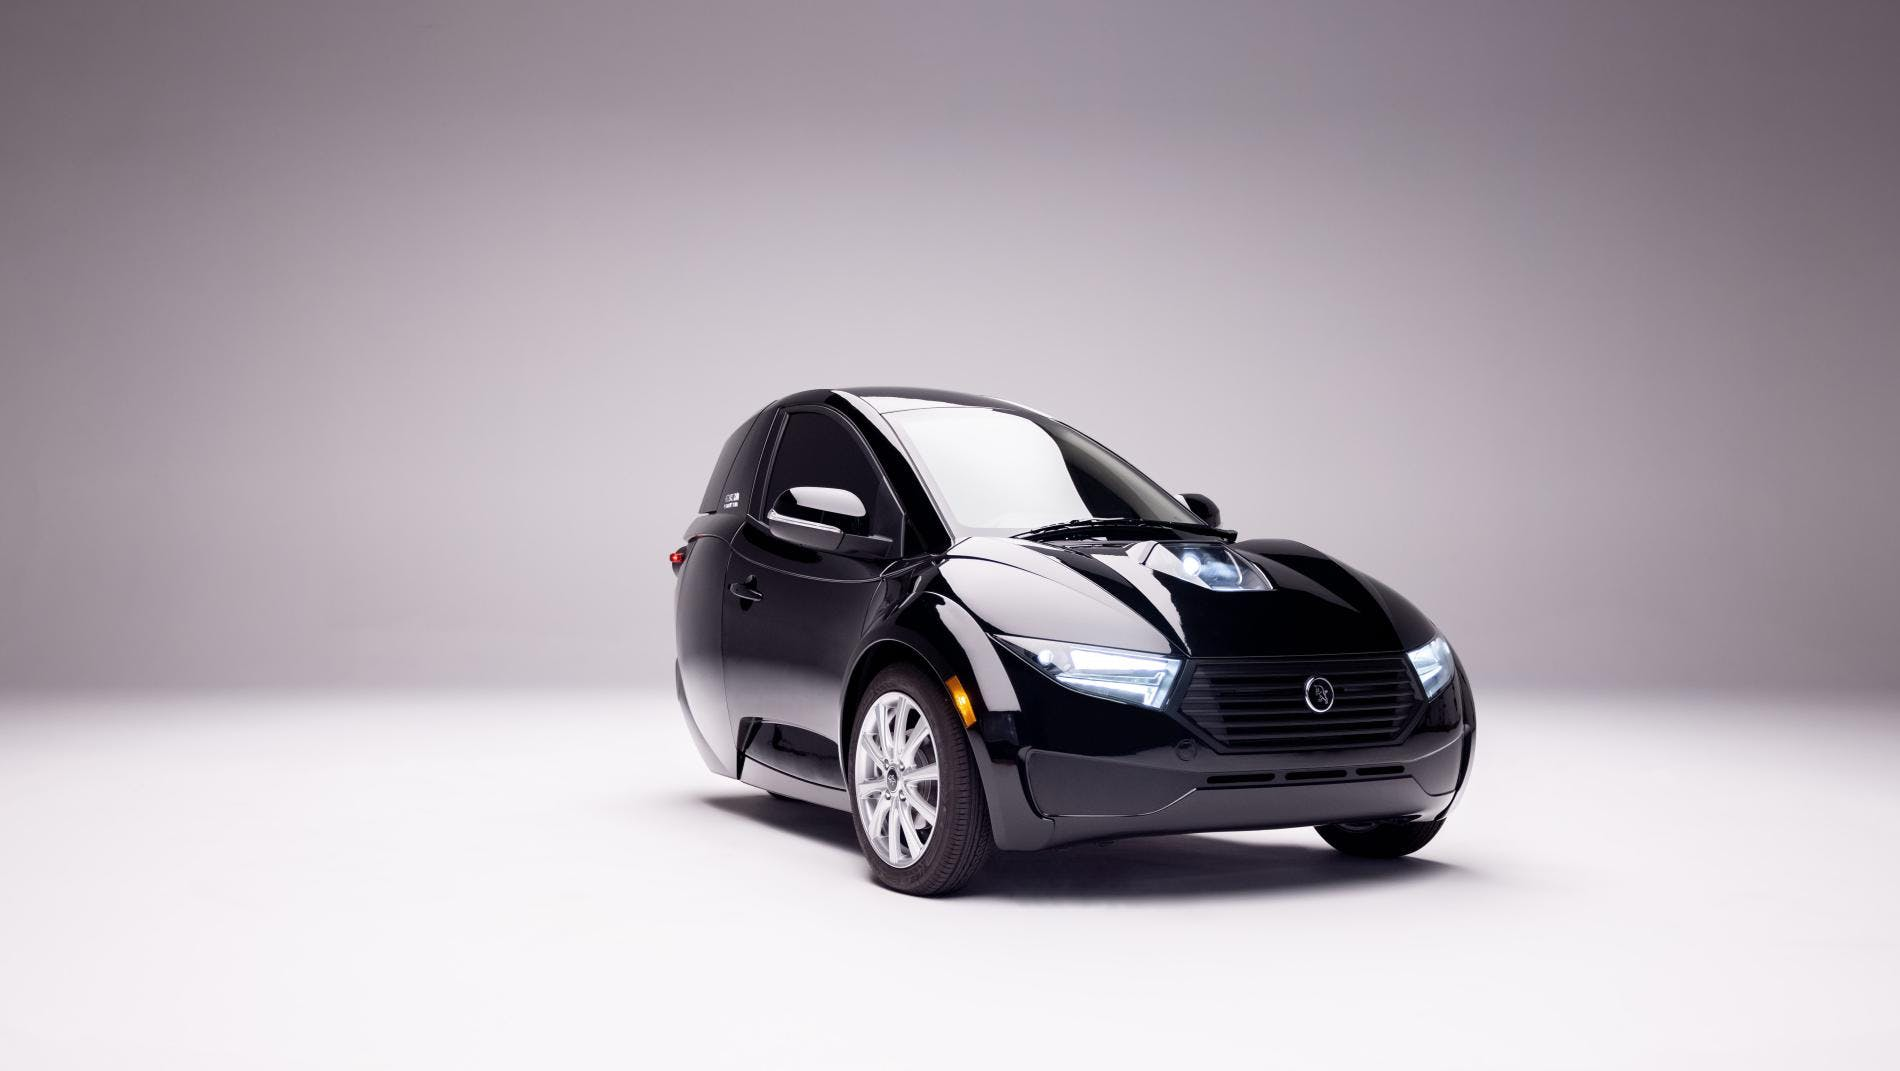 Quartz: Three-wheelers, the punchline of the auto world, are finally having a moment